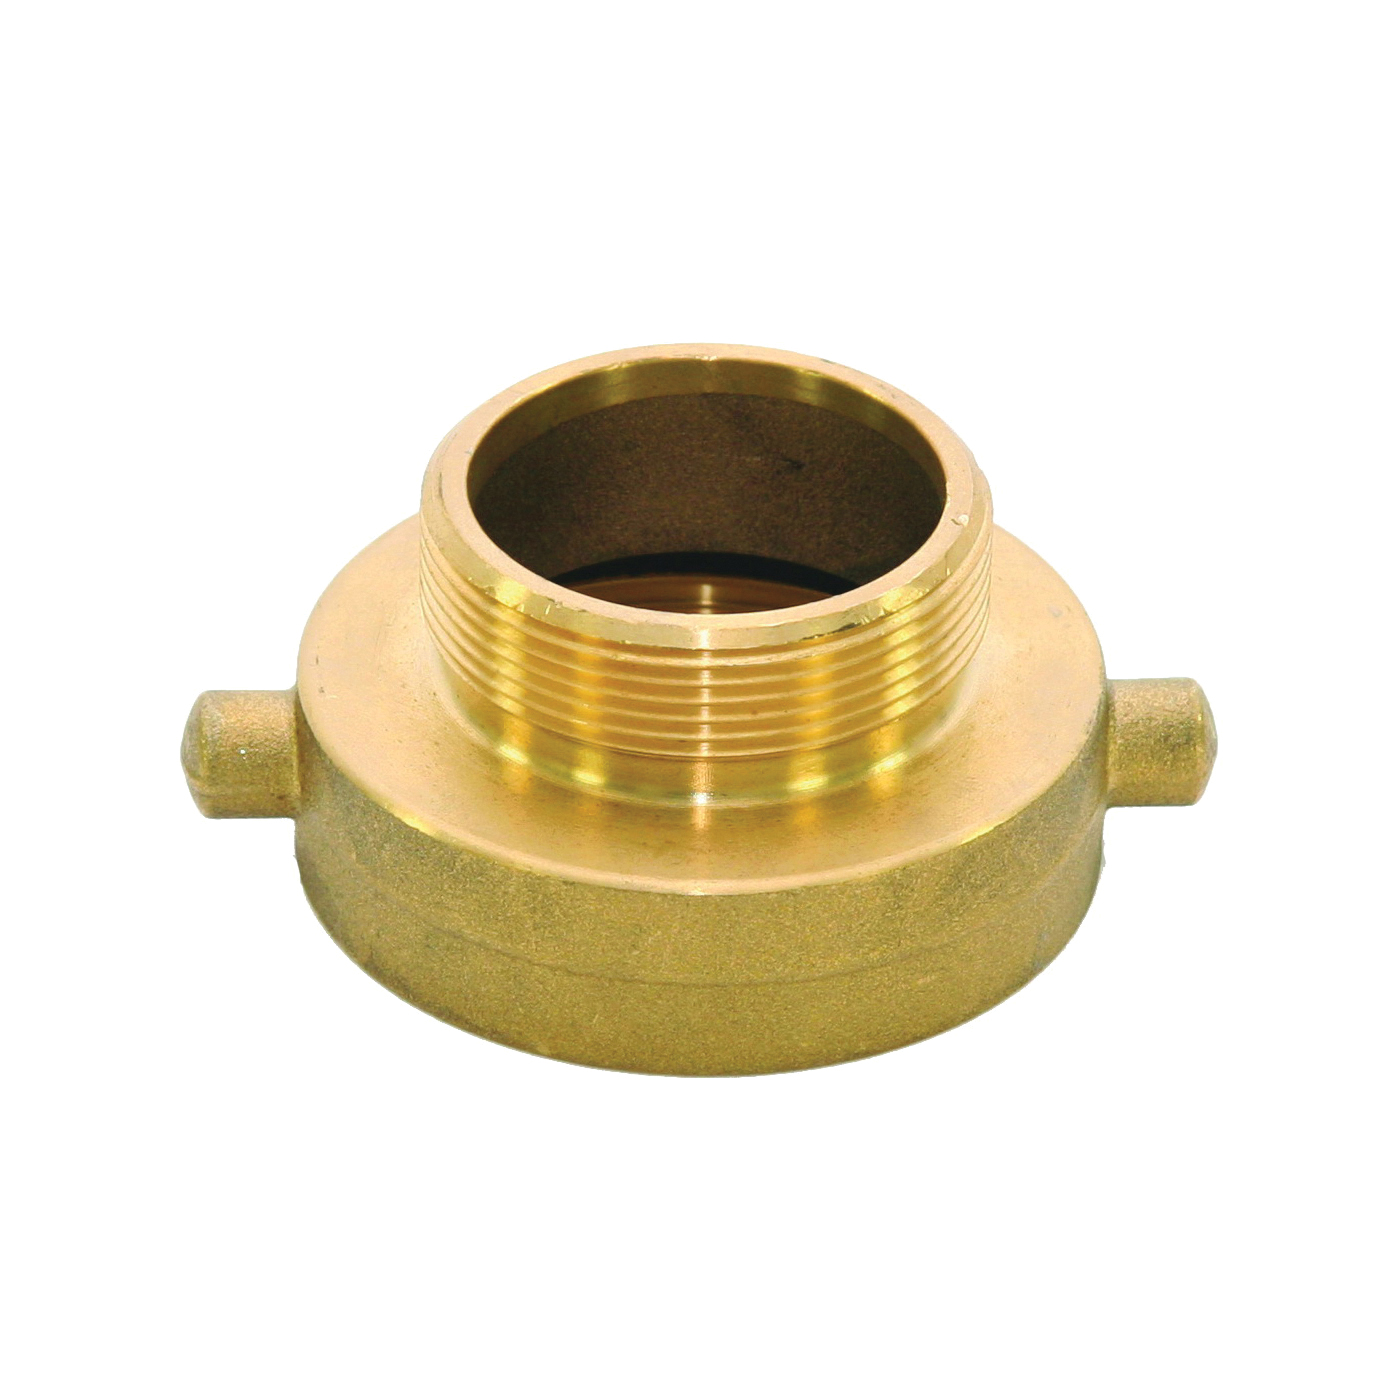 Picture of ABBOTT RUBBER JBHA-150 Hydrant Adapter, 2-1/2 x 1-1/2 in, NST x NPT, Brass